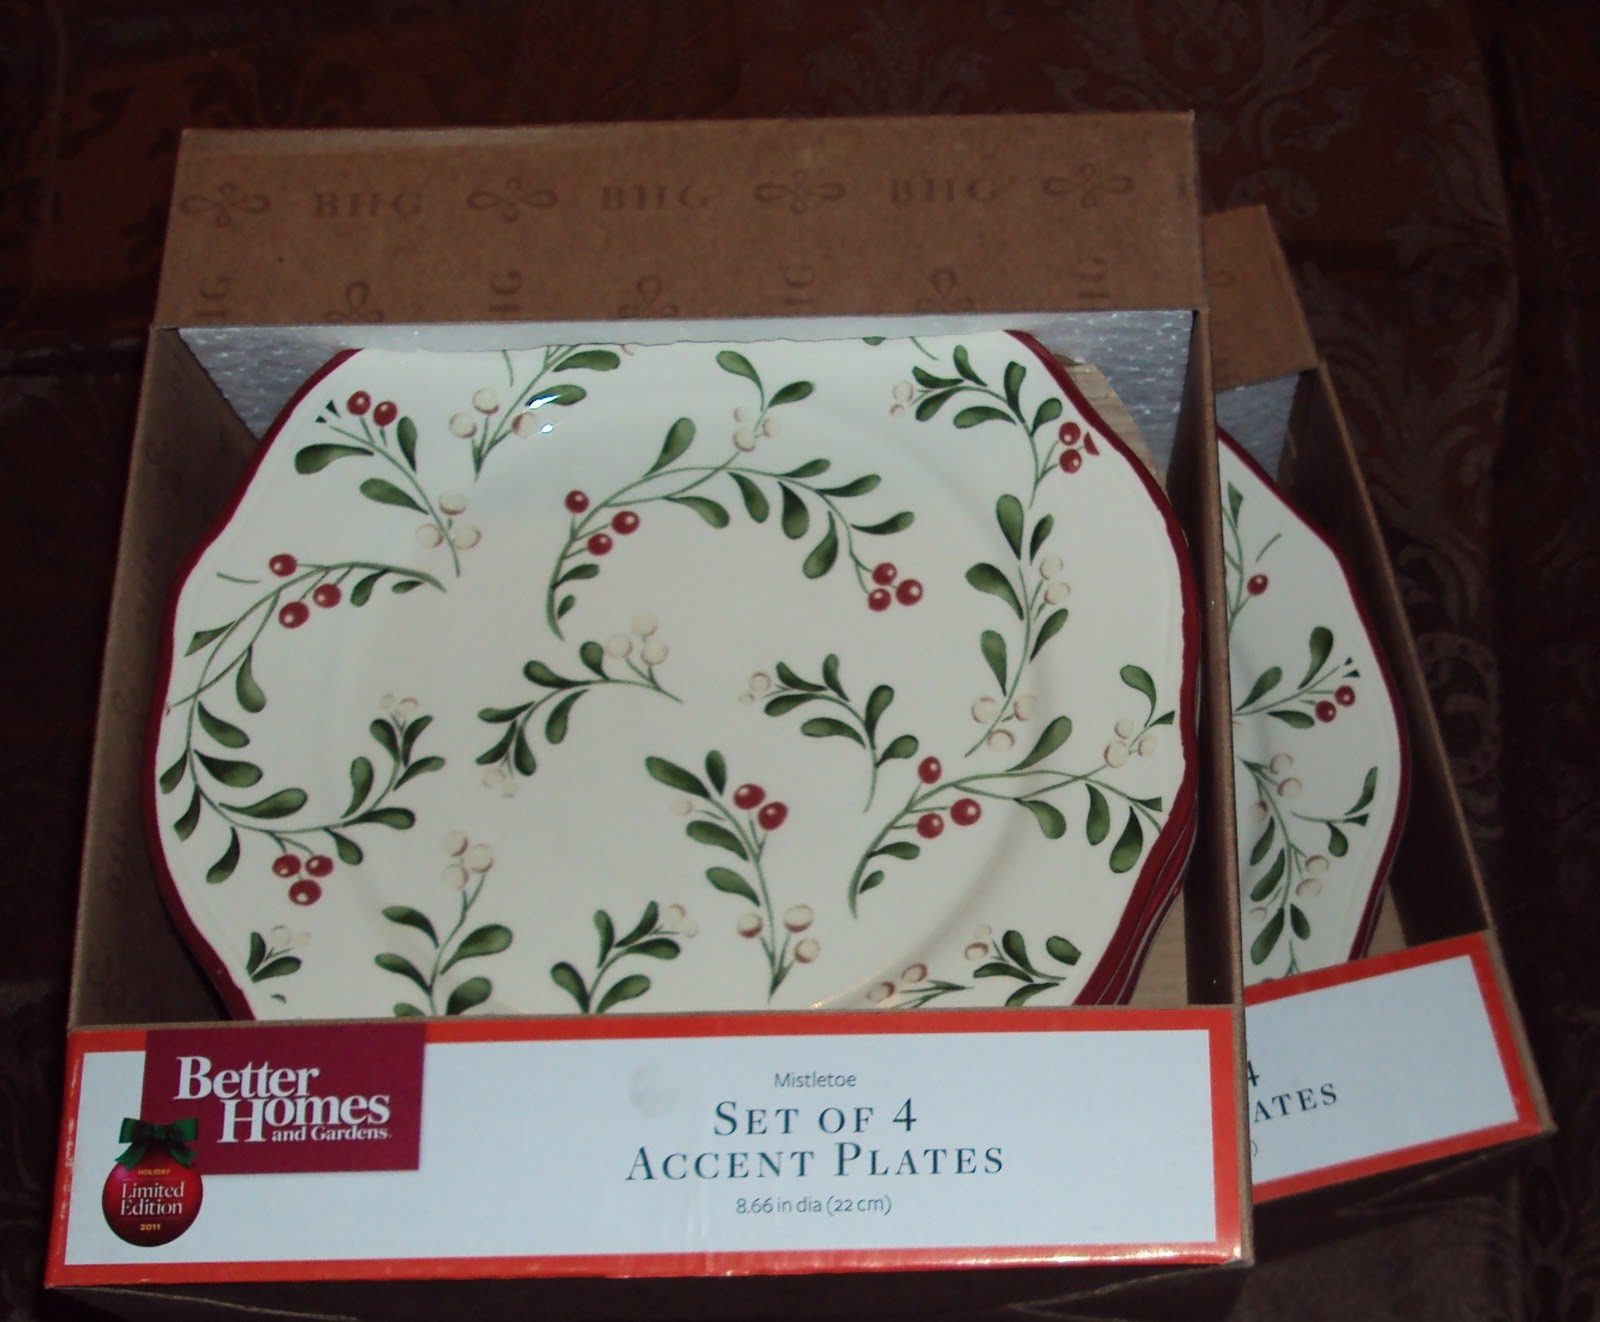 Mission Locate Holiday Dinnerware by Better Homes Gardens Wal